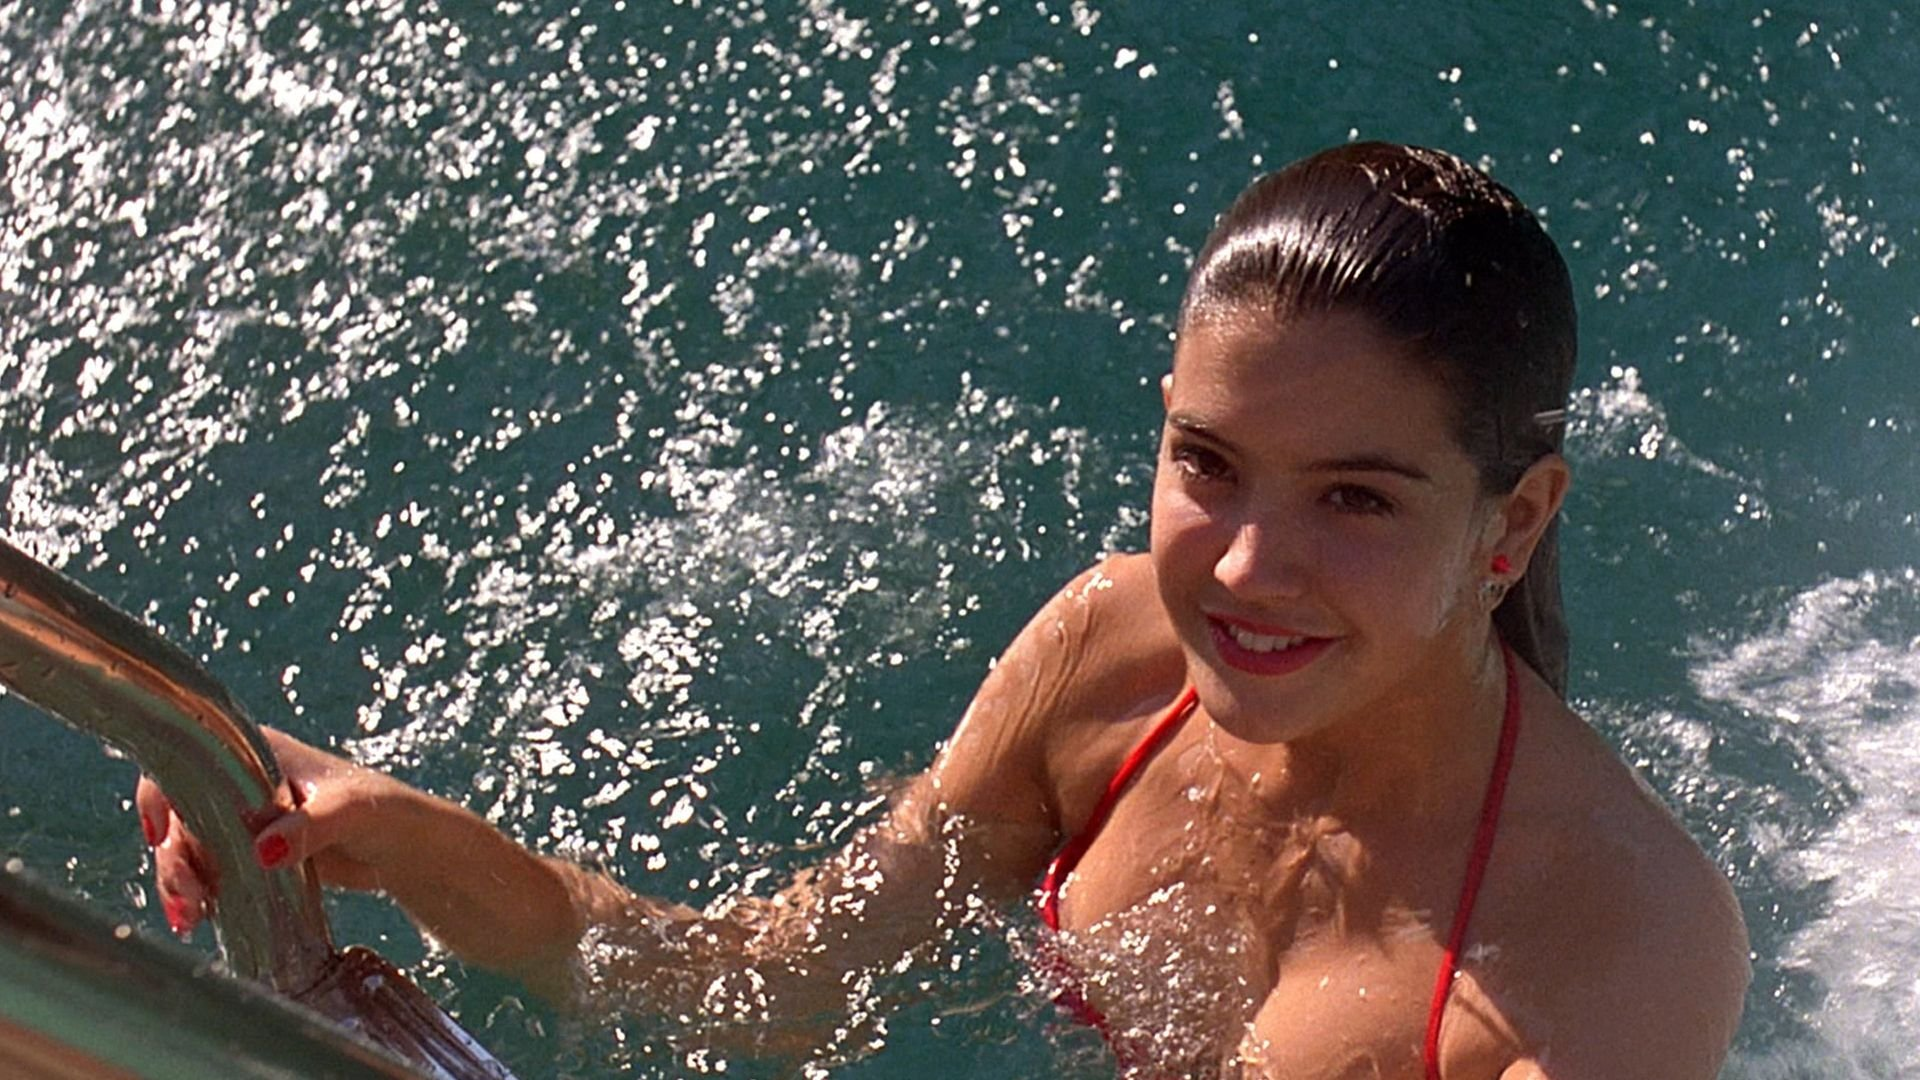 Phoebe Cates: Why The Fast Times Star Retired At 31 And What She's Doing Now